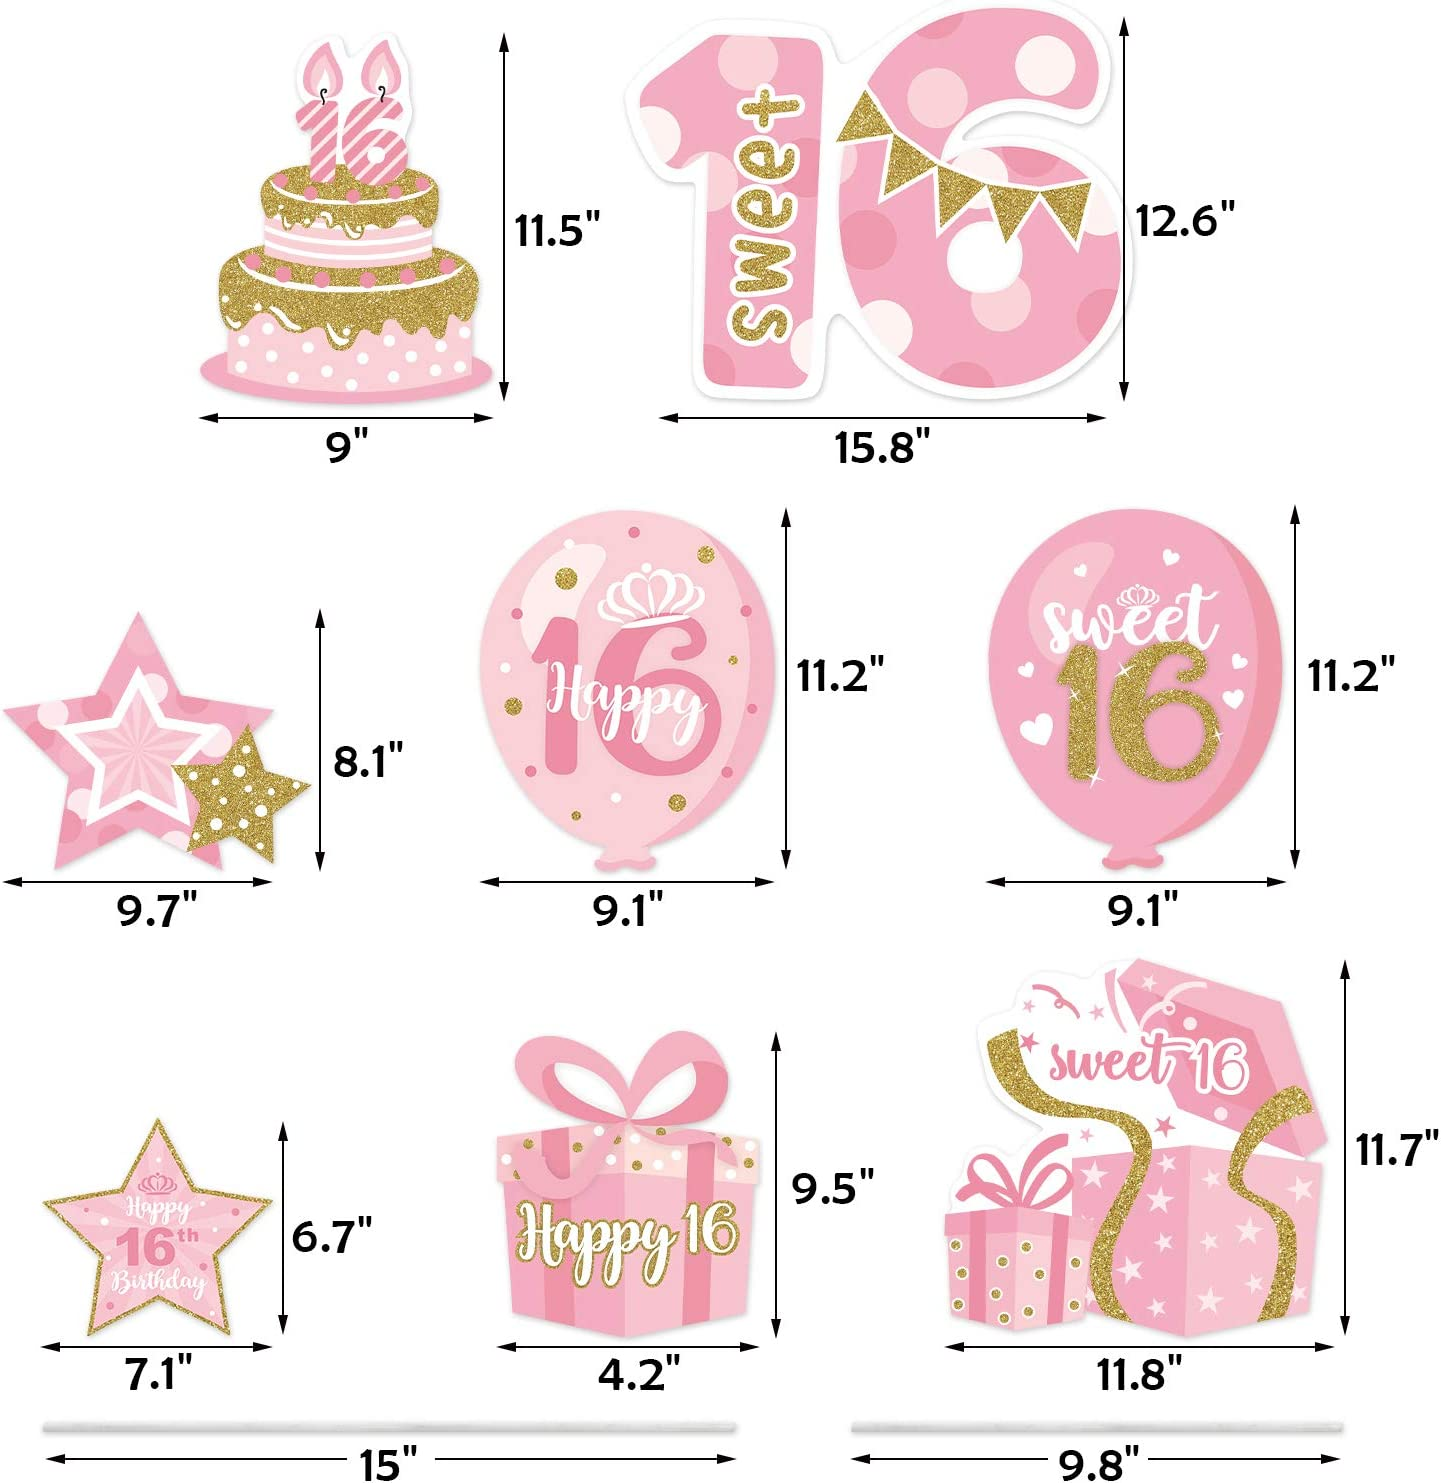 16th Birthday Yard Sign Cutouts with Stakes Happy Birthday Yard Signs Lawn Outdoor Pink and Gold Decorations for Girls Birthday Party Supplies Set of 8